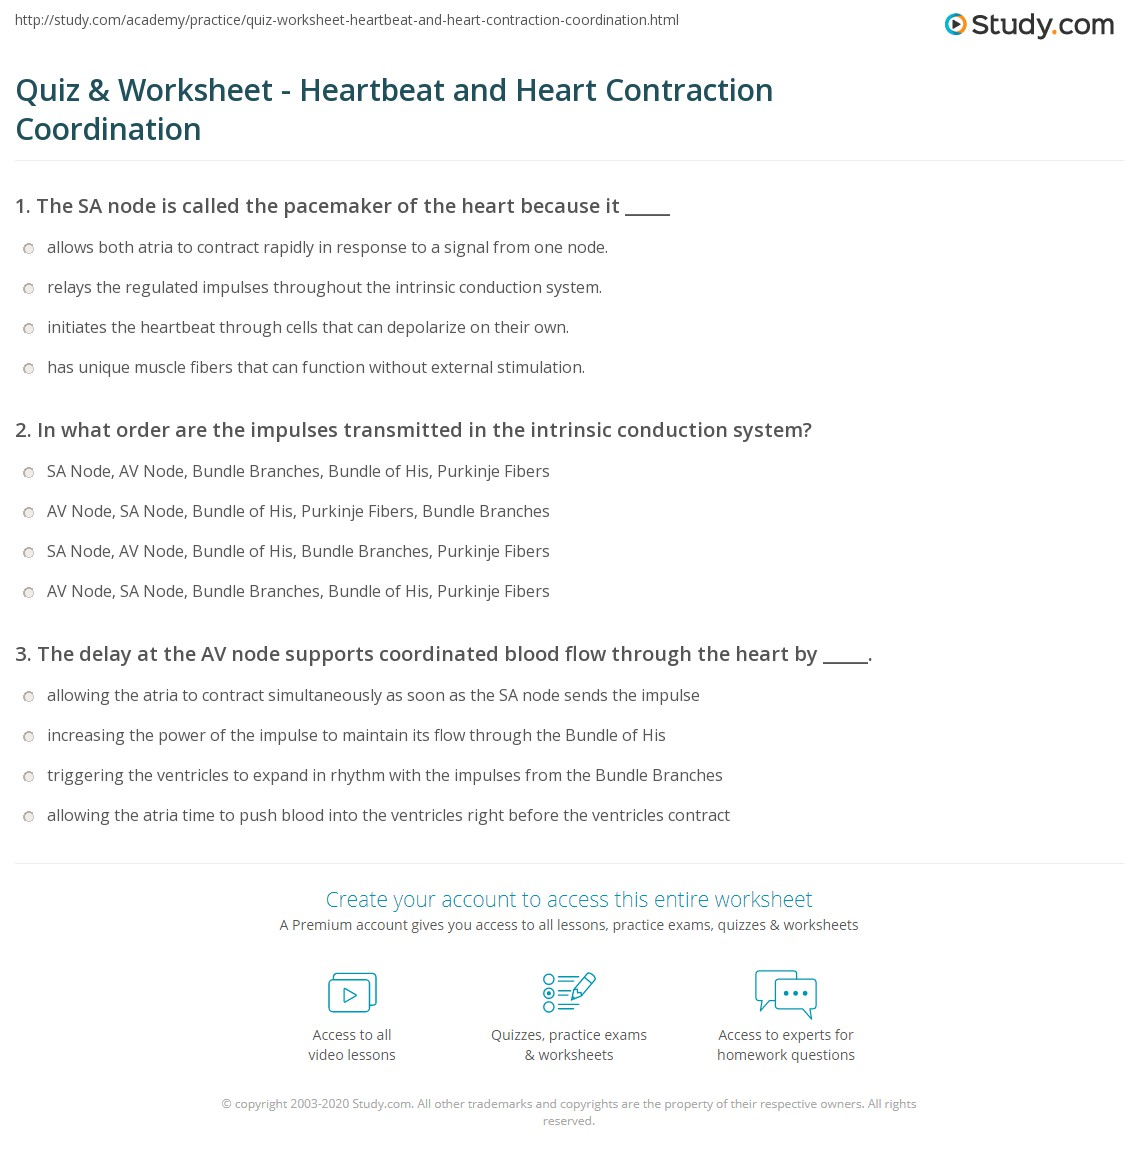 quiz worksheet heartbeat and heart contraction coordination. Black Bedroom Furniture Sets. Home Design Ideas